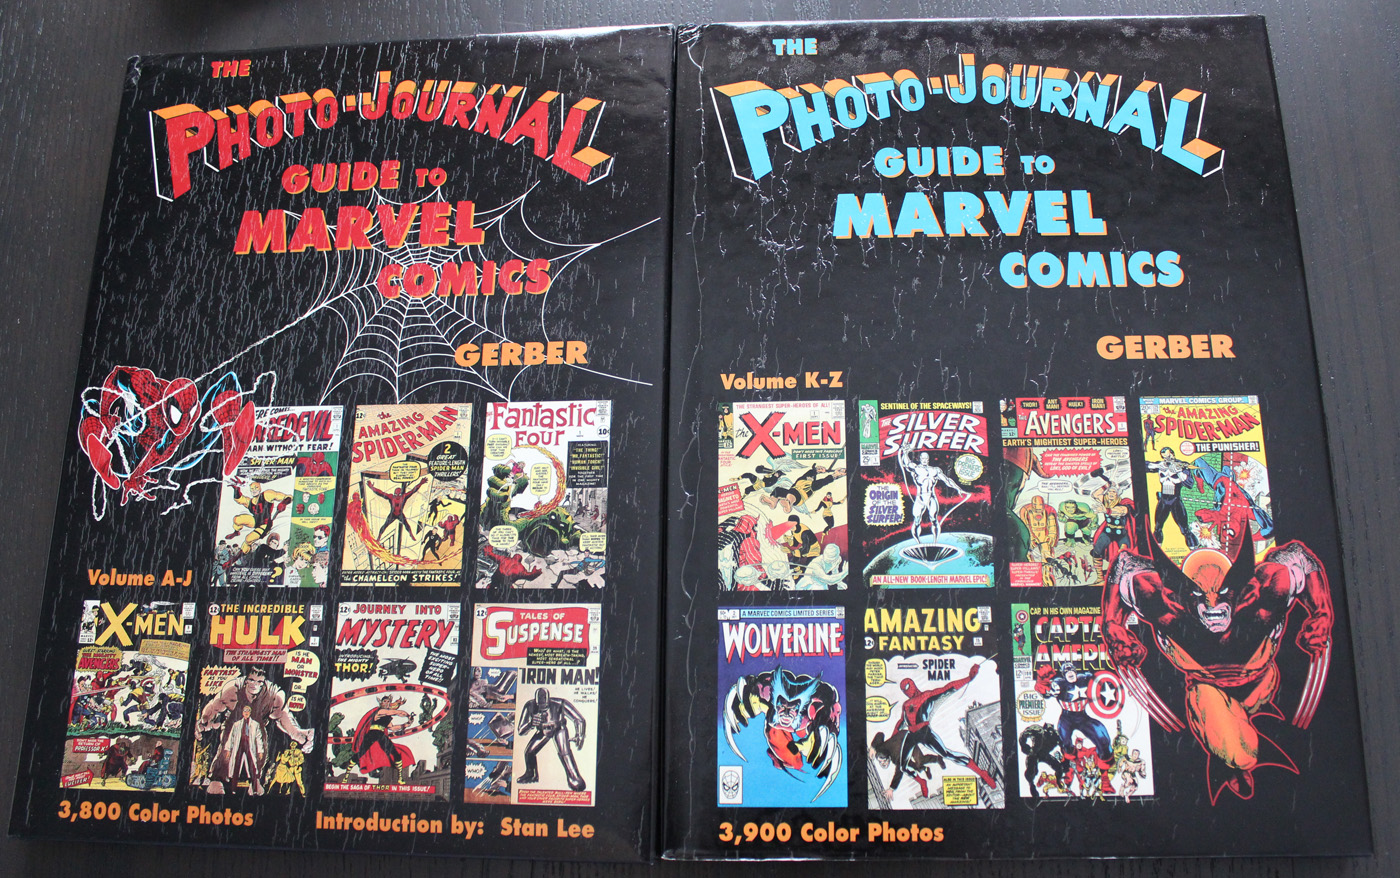 Free Shipping Photo-Journal Guide to Marvel Comics Volumes 3+4 HC 60/% OFF